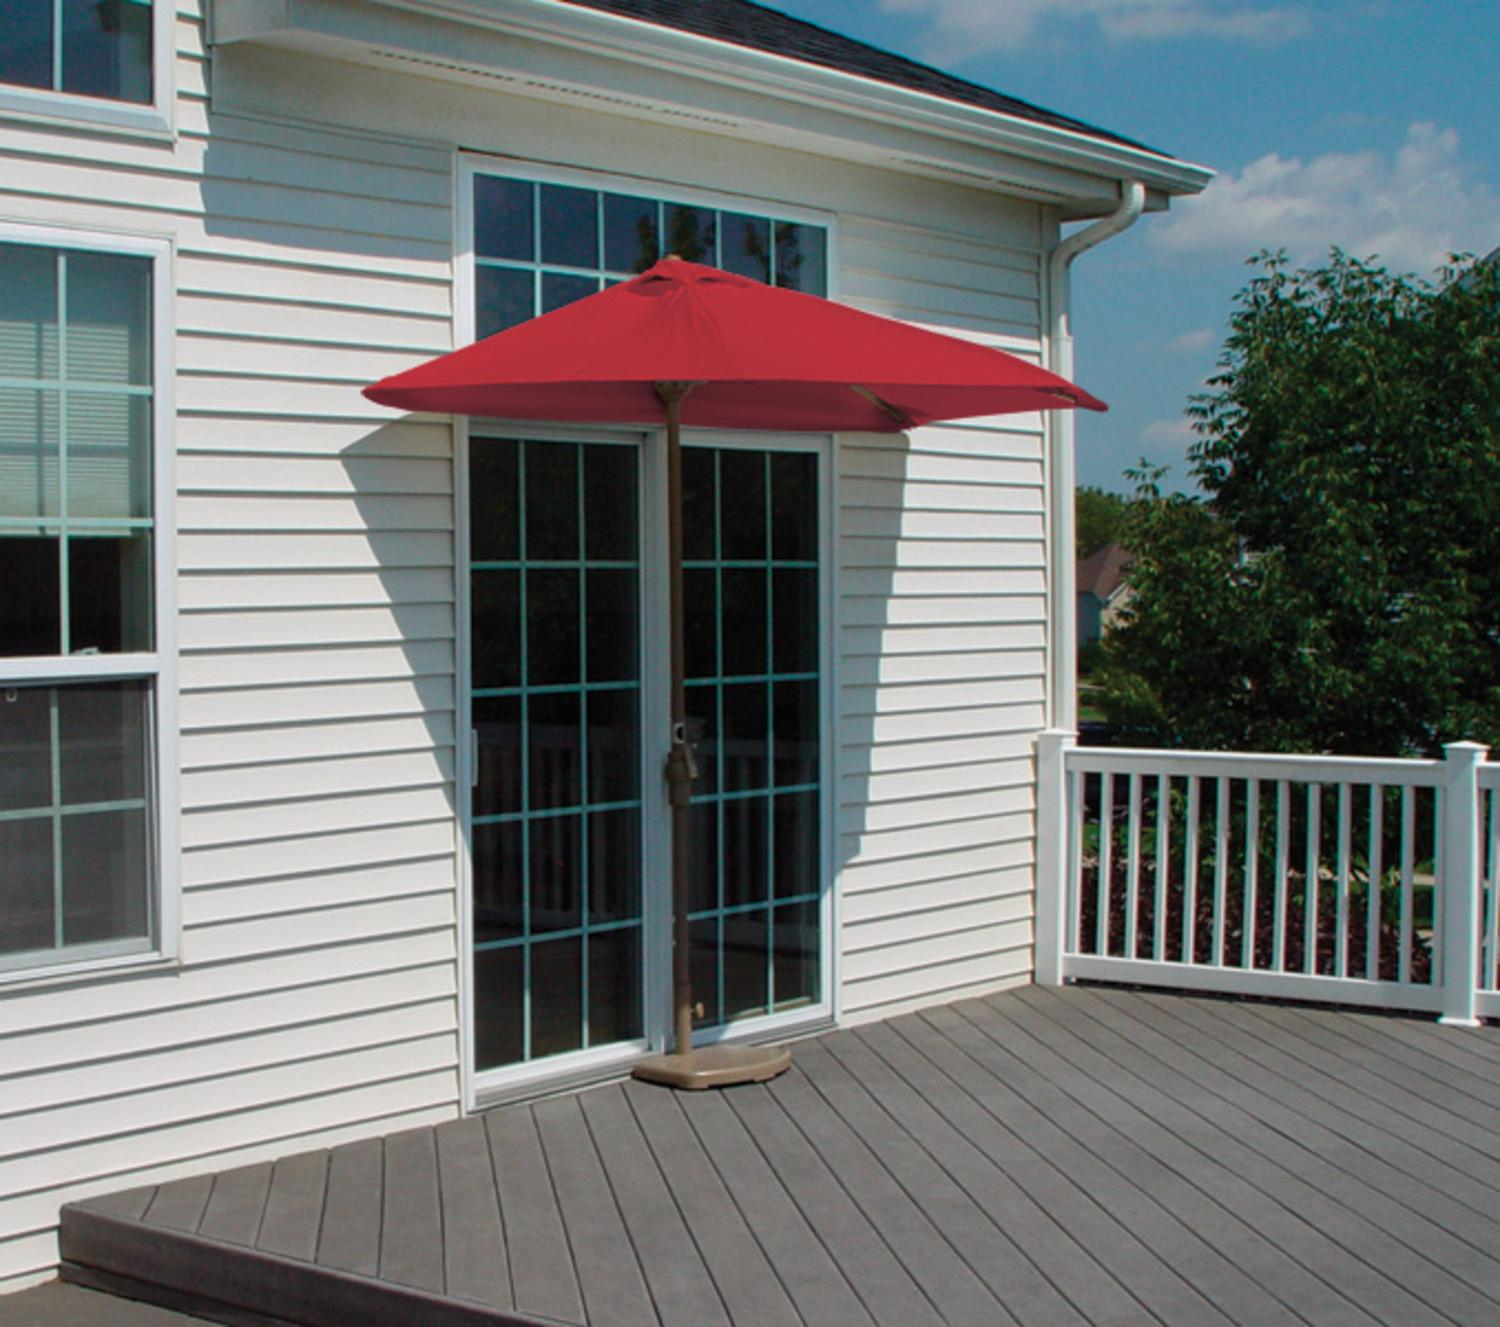 75u0027 half canopy patio market umbrella red sunbrella